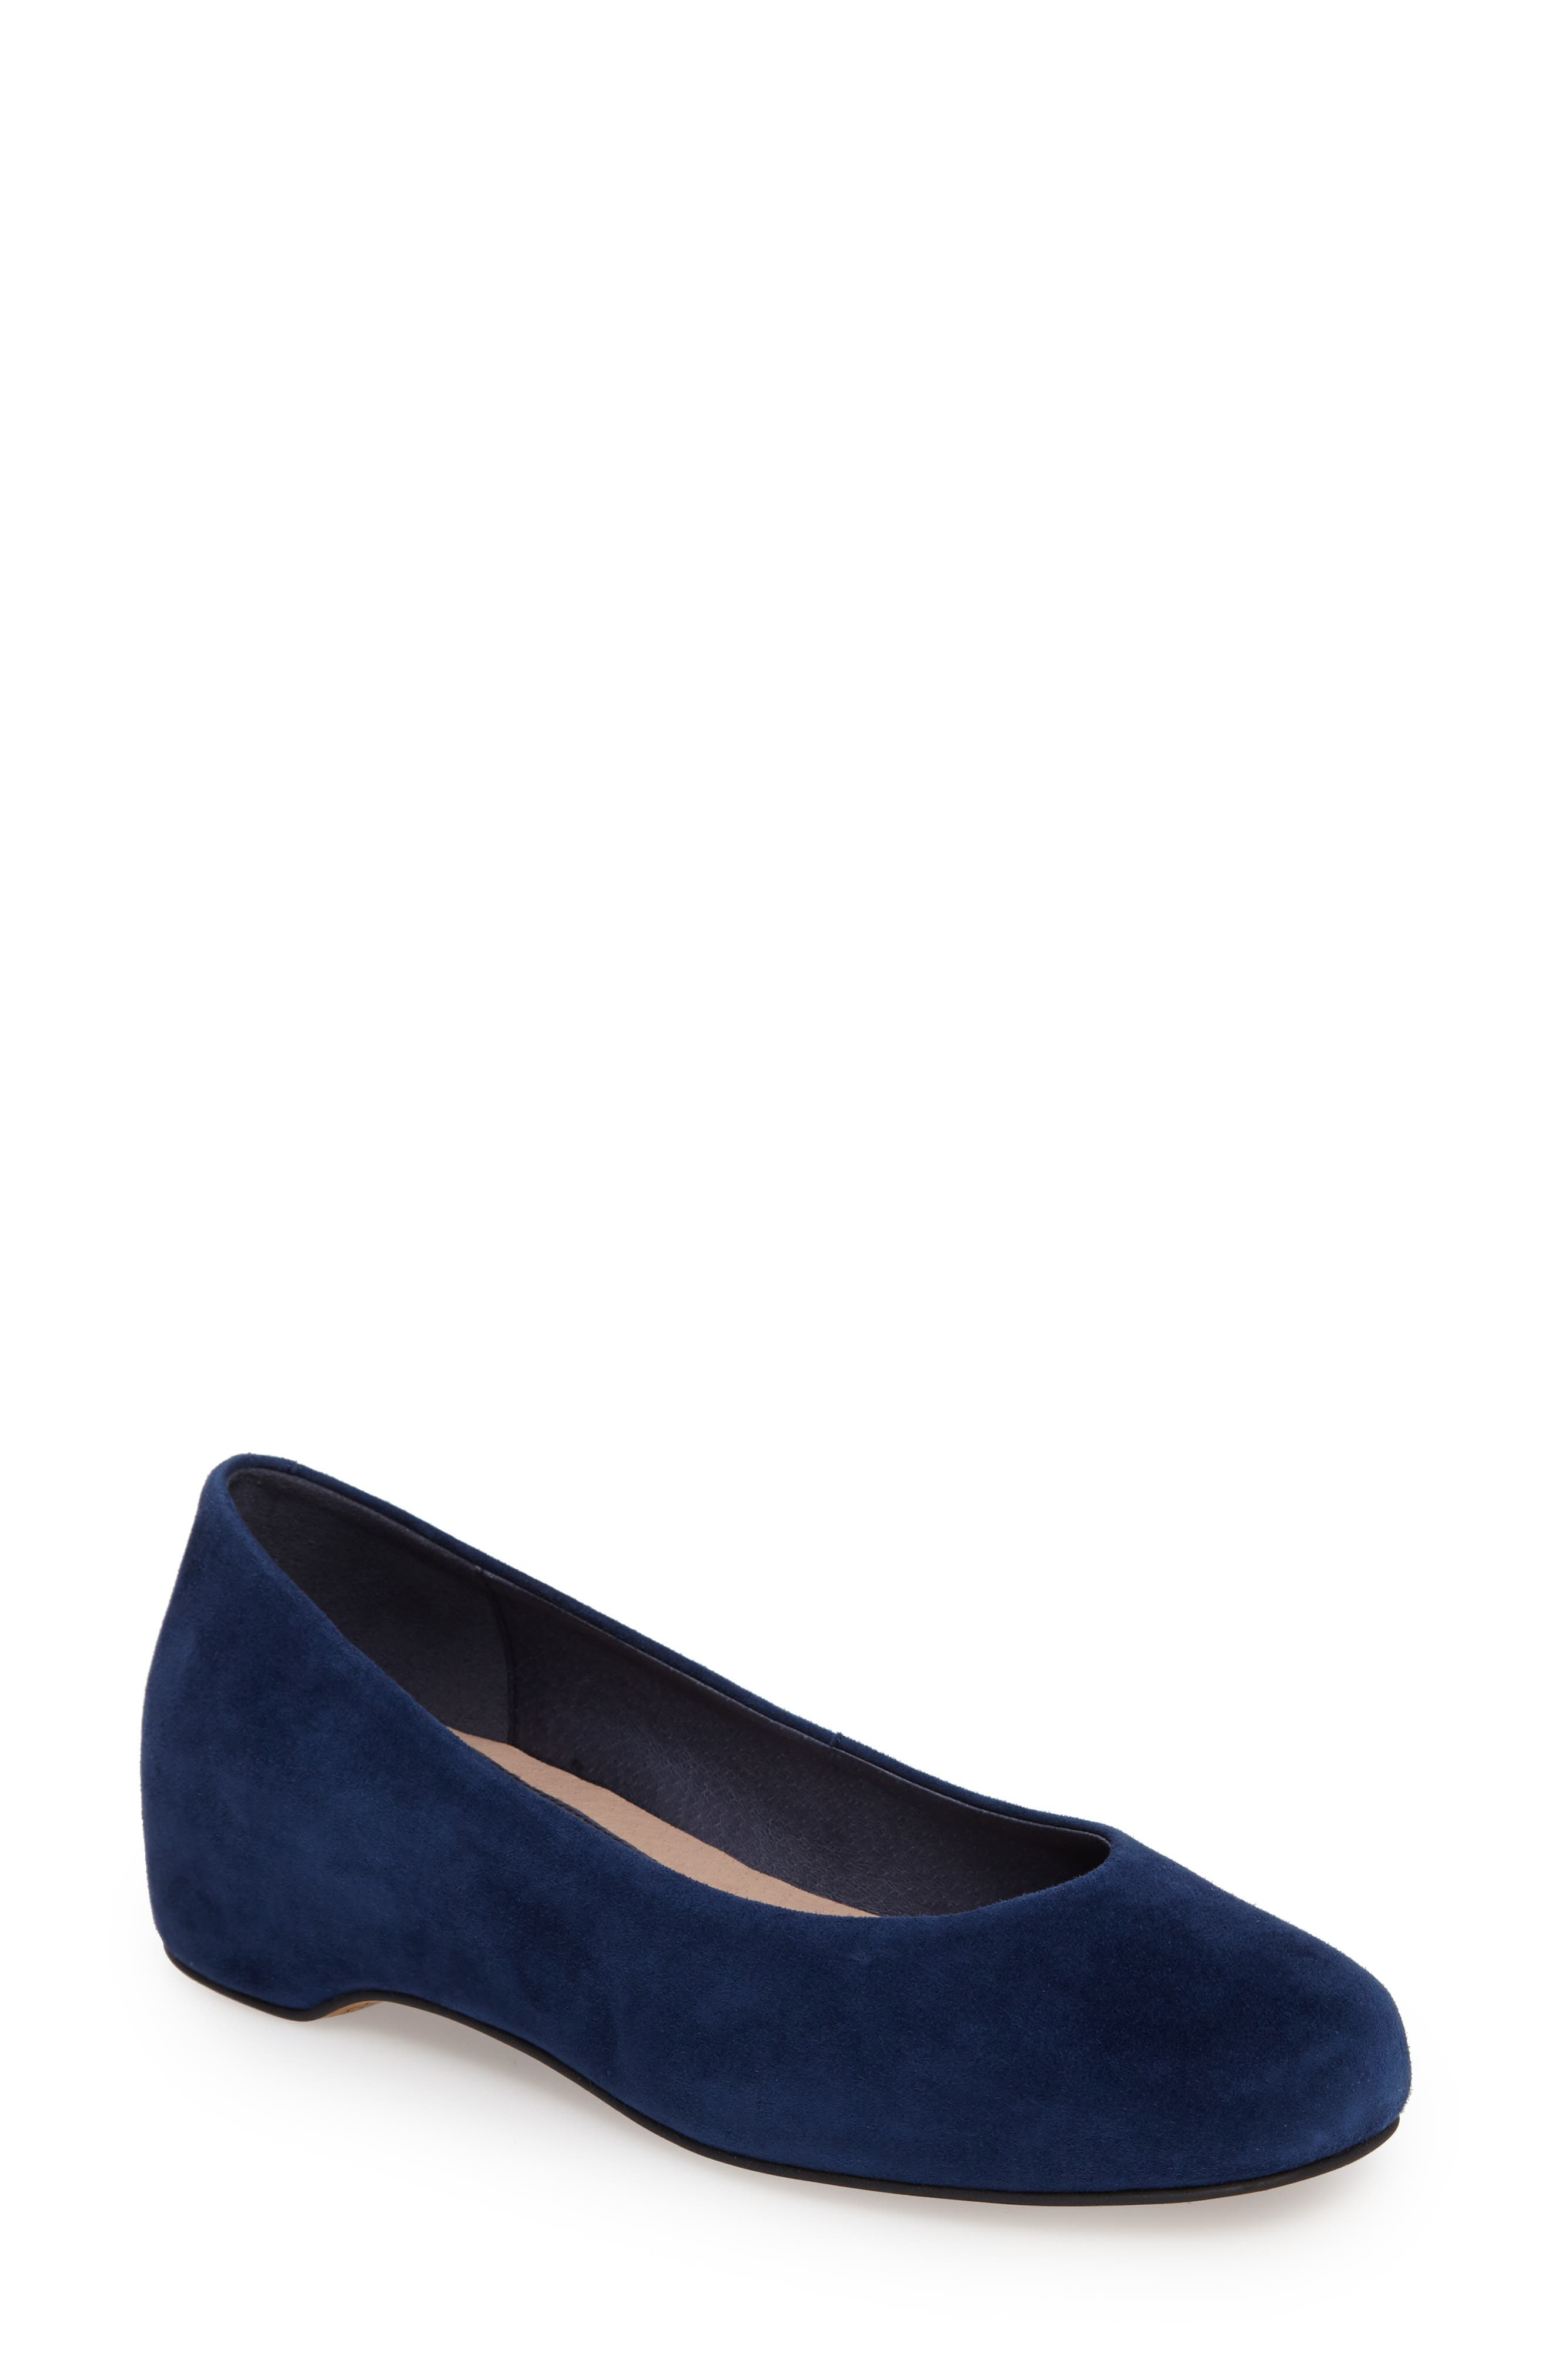 Serena Flat,                             Main thumbnail 1, color,                             Blue Leather